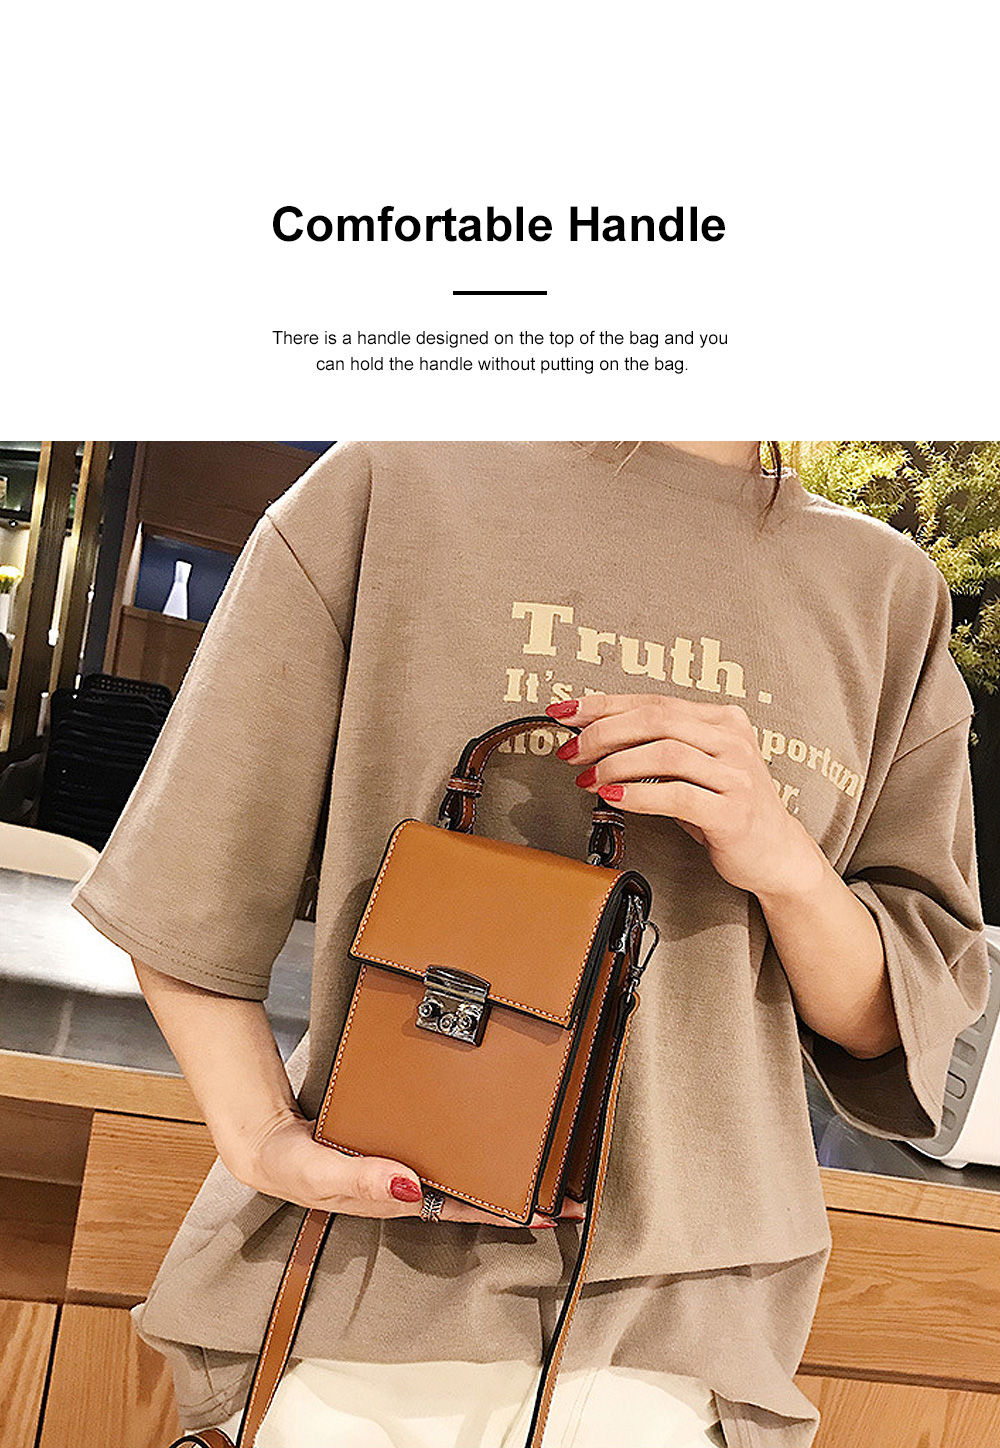 Minimalist Vintage Women Shoulder Slung Bag with Comfortable Handle Small Phone PU Leather Hand Bag for Ladies 1